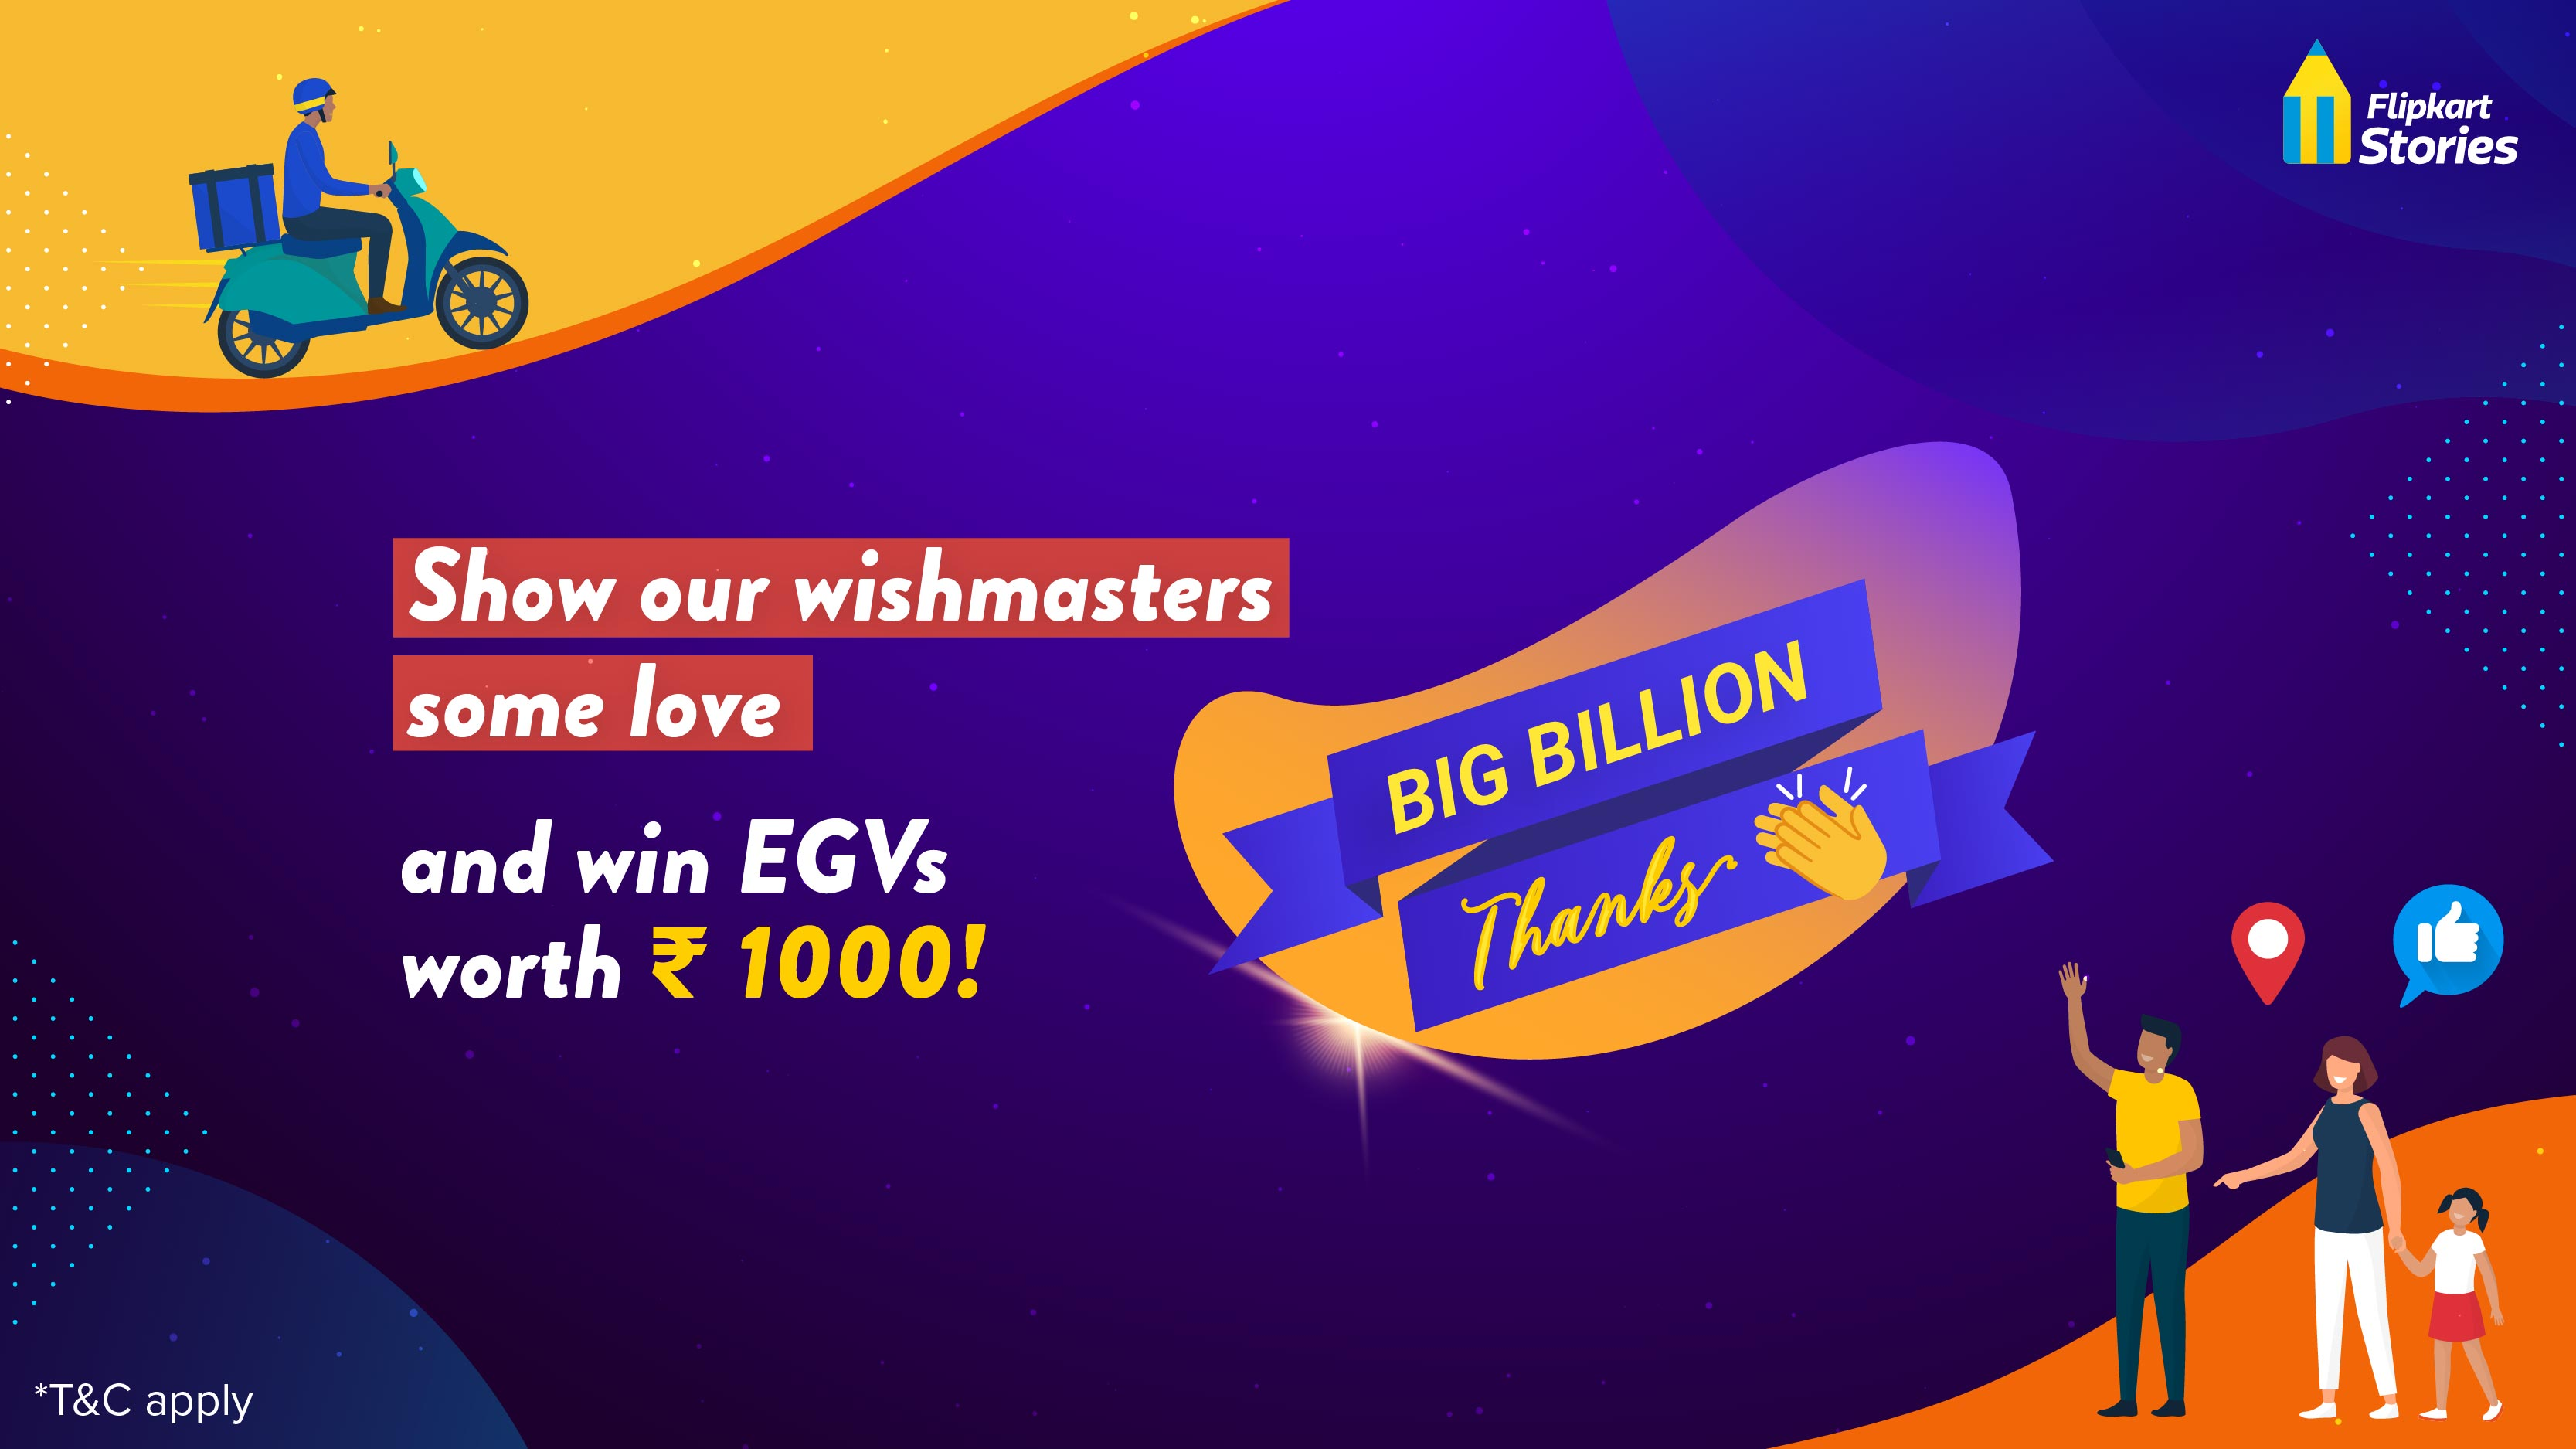 #ContestAlert: Give Flipkart wishmasters the #BigBillionThanks they deserve!